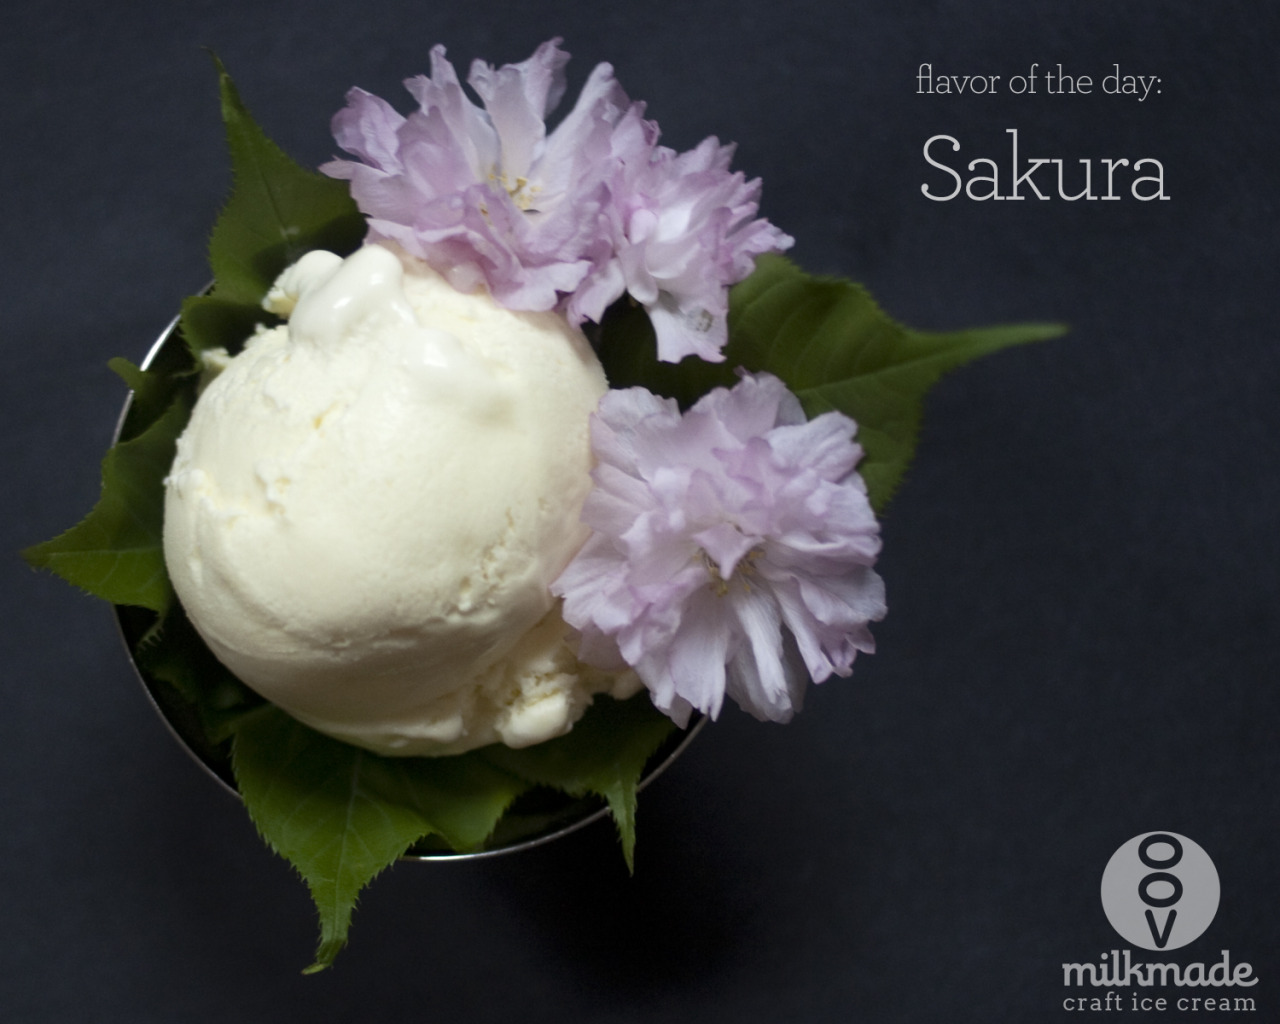 milkmade flavor of the day: Sakura (aka Cherry Blossom Ice Cream)cherry blossom ice cream served over the cherry blossom leavesSpring sprung this weekend in New York and it sure was gorgeous. We were able to pay a trip out to the Brooklyn Botanical Garden for the annual Cherry Blossom Festival. After a little hanami - the act of enjoying the beauty of cherry blossom flowers - at the park, we snagged some felled blossoms, took them home, and turned them into ice cream. Of course we did! See, in Japan the flowers and leaves of the cherry blossom tree are preserved and eaten — either salted and pickled, or used in tea, or wrapped around mochi to make sakuramochi or other candies. Now, we present, Sakura Ice Cream. How does it taste, you ask? It's smooth, milky, delicious, and oddly enough, tastes a bit like coconut.